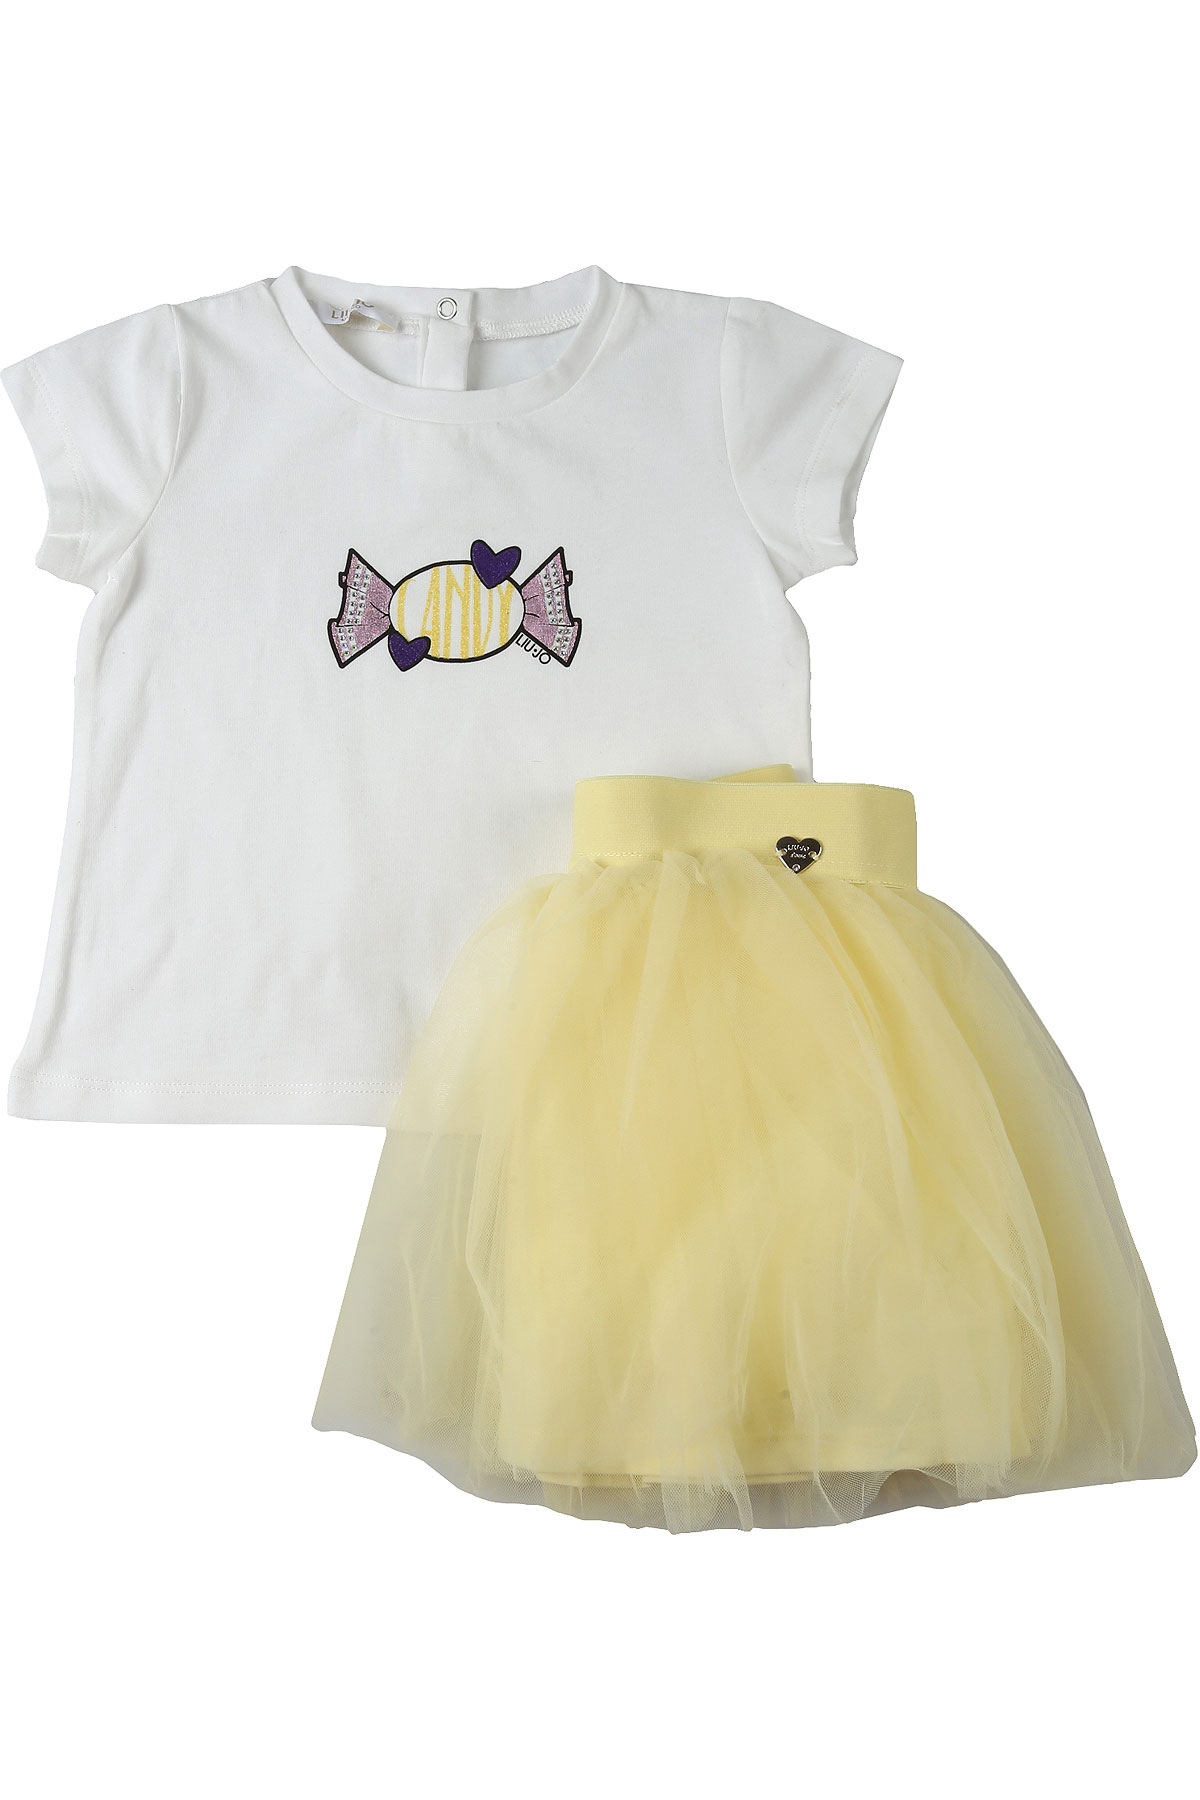 Liu Jo Baby Sets for Girls On Sale, White, Cotton, 2019, 12M 18M 3M